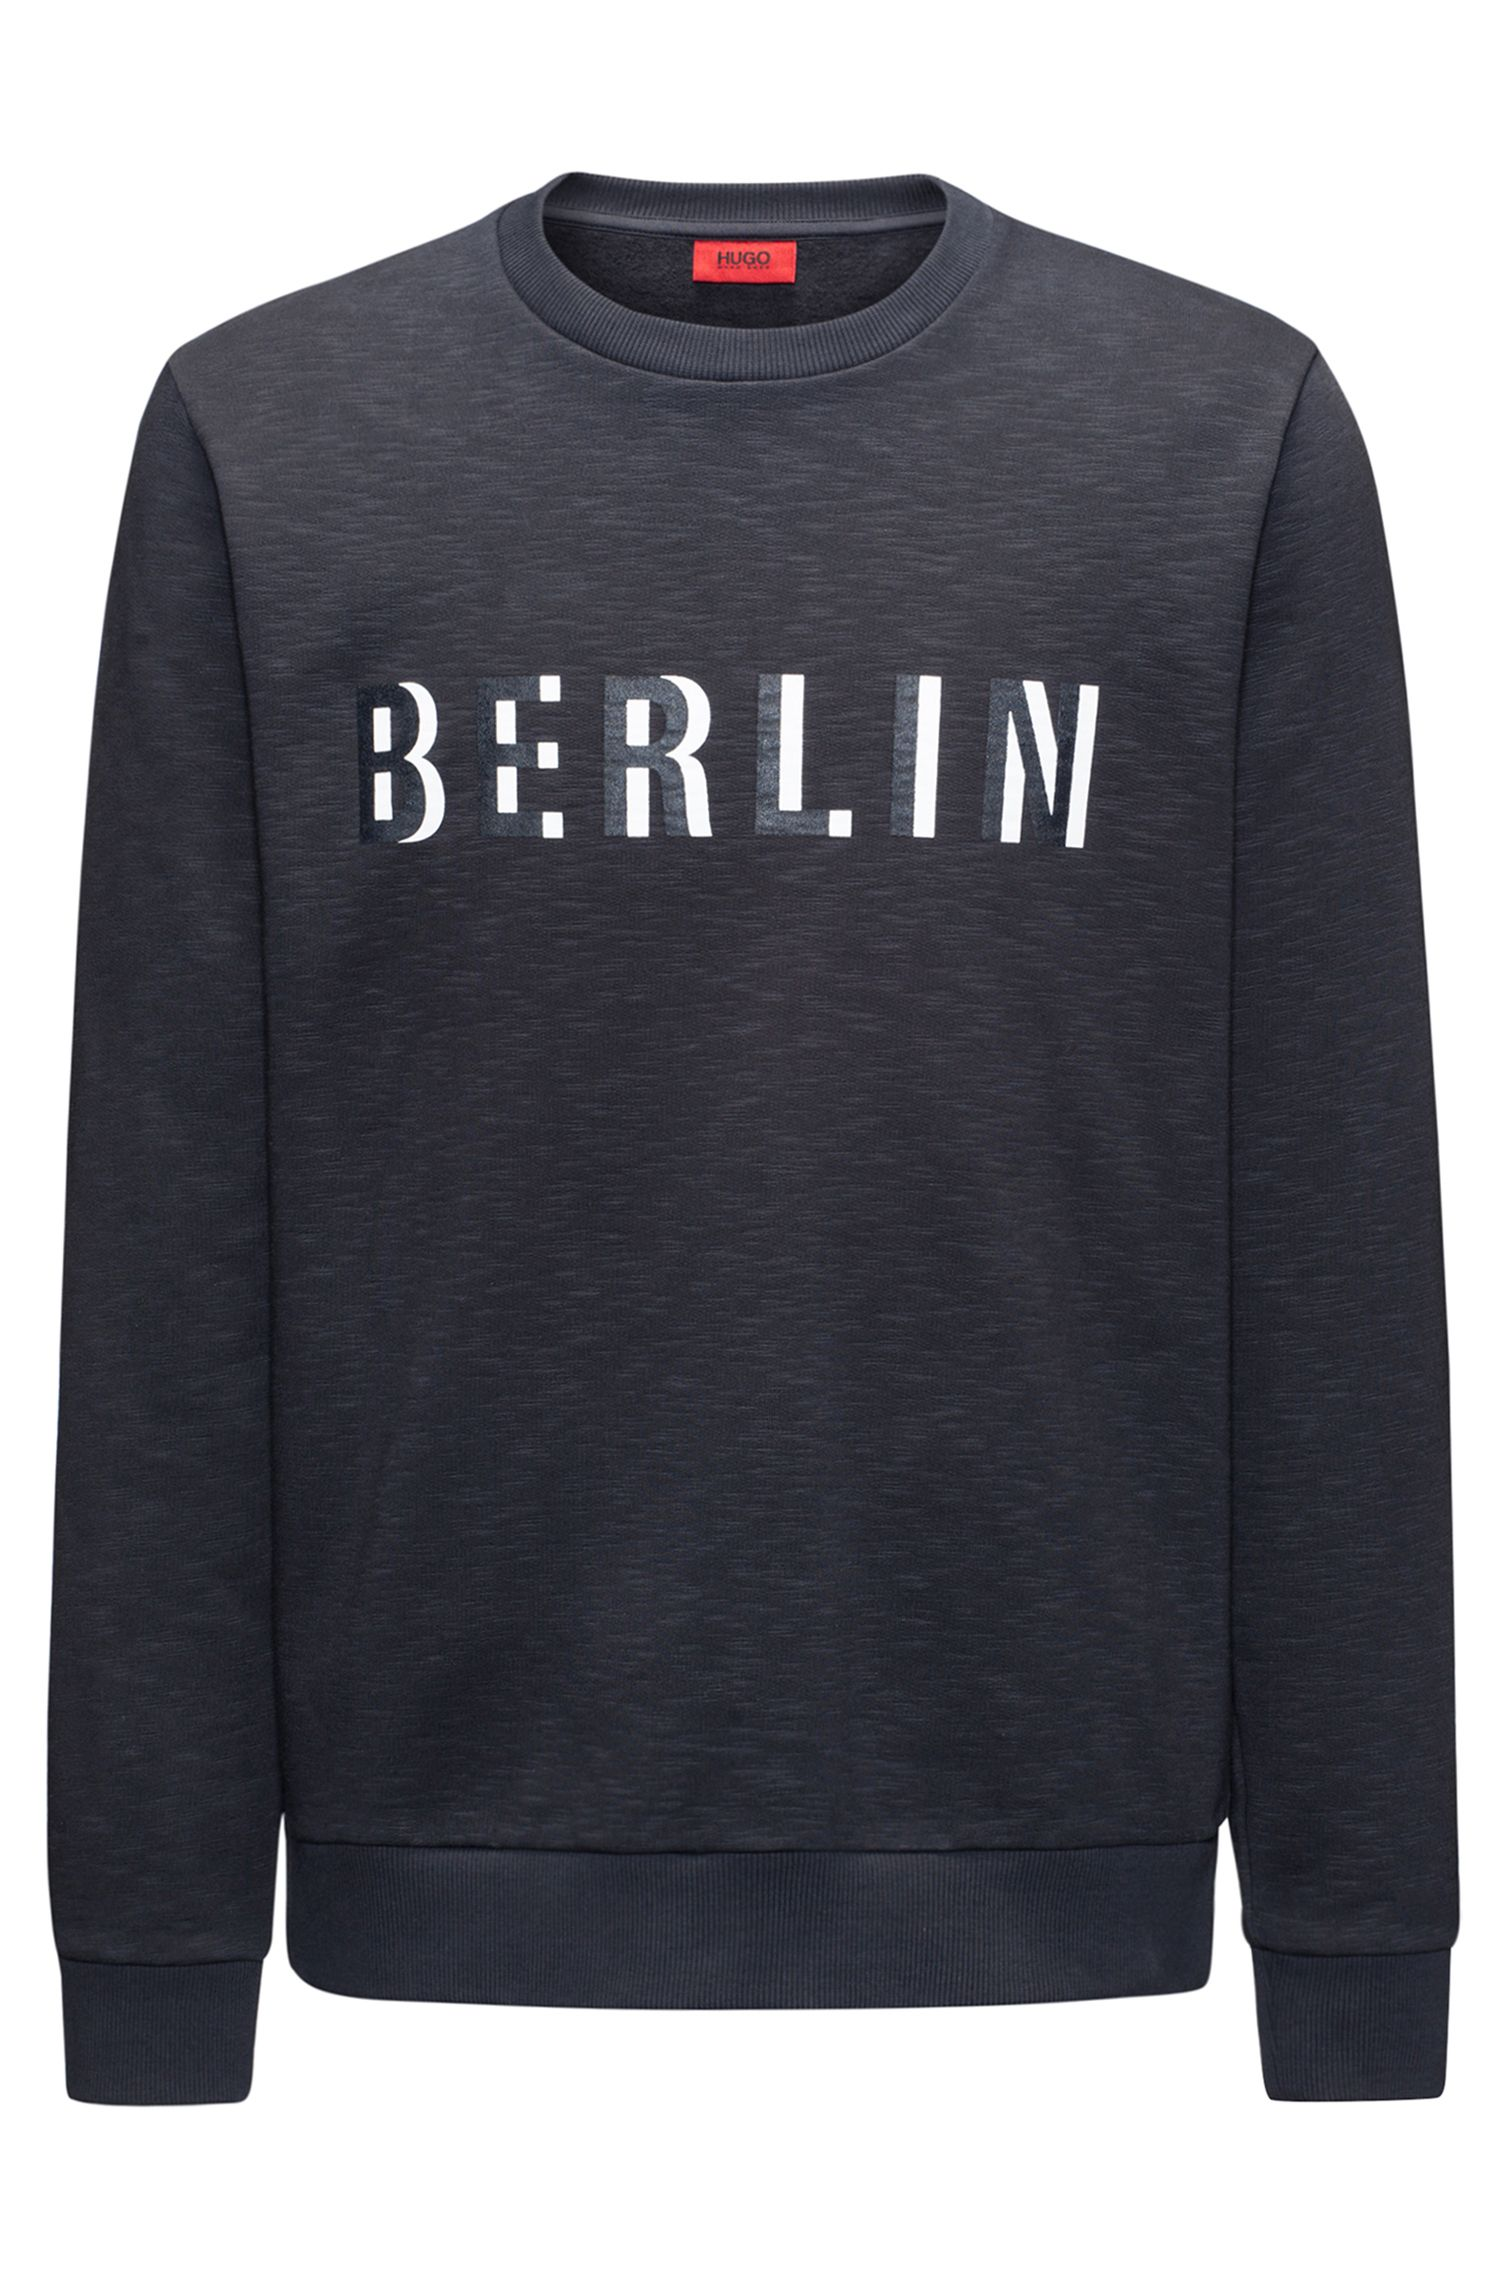 Crew-neck slogan sweatshirt in slub French terry